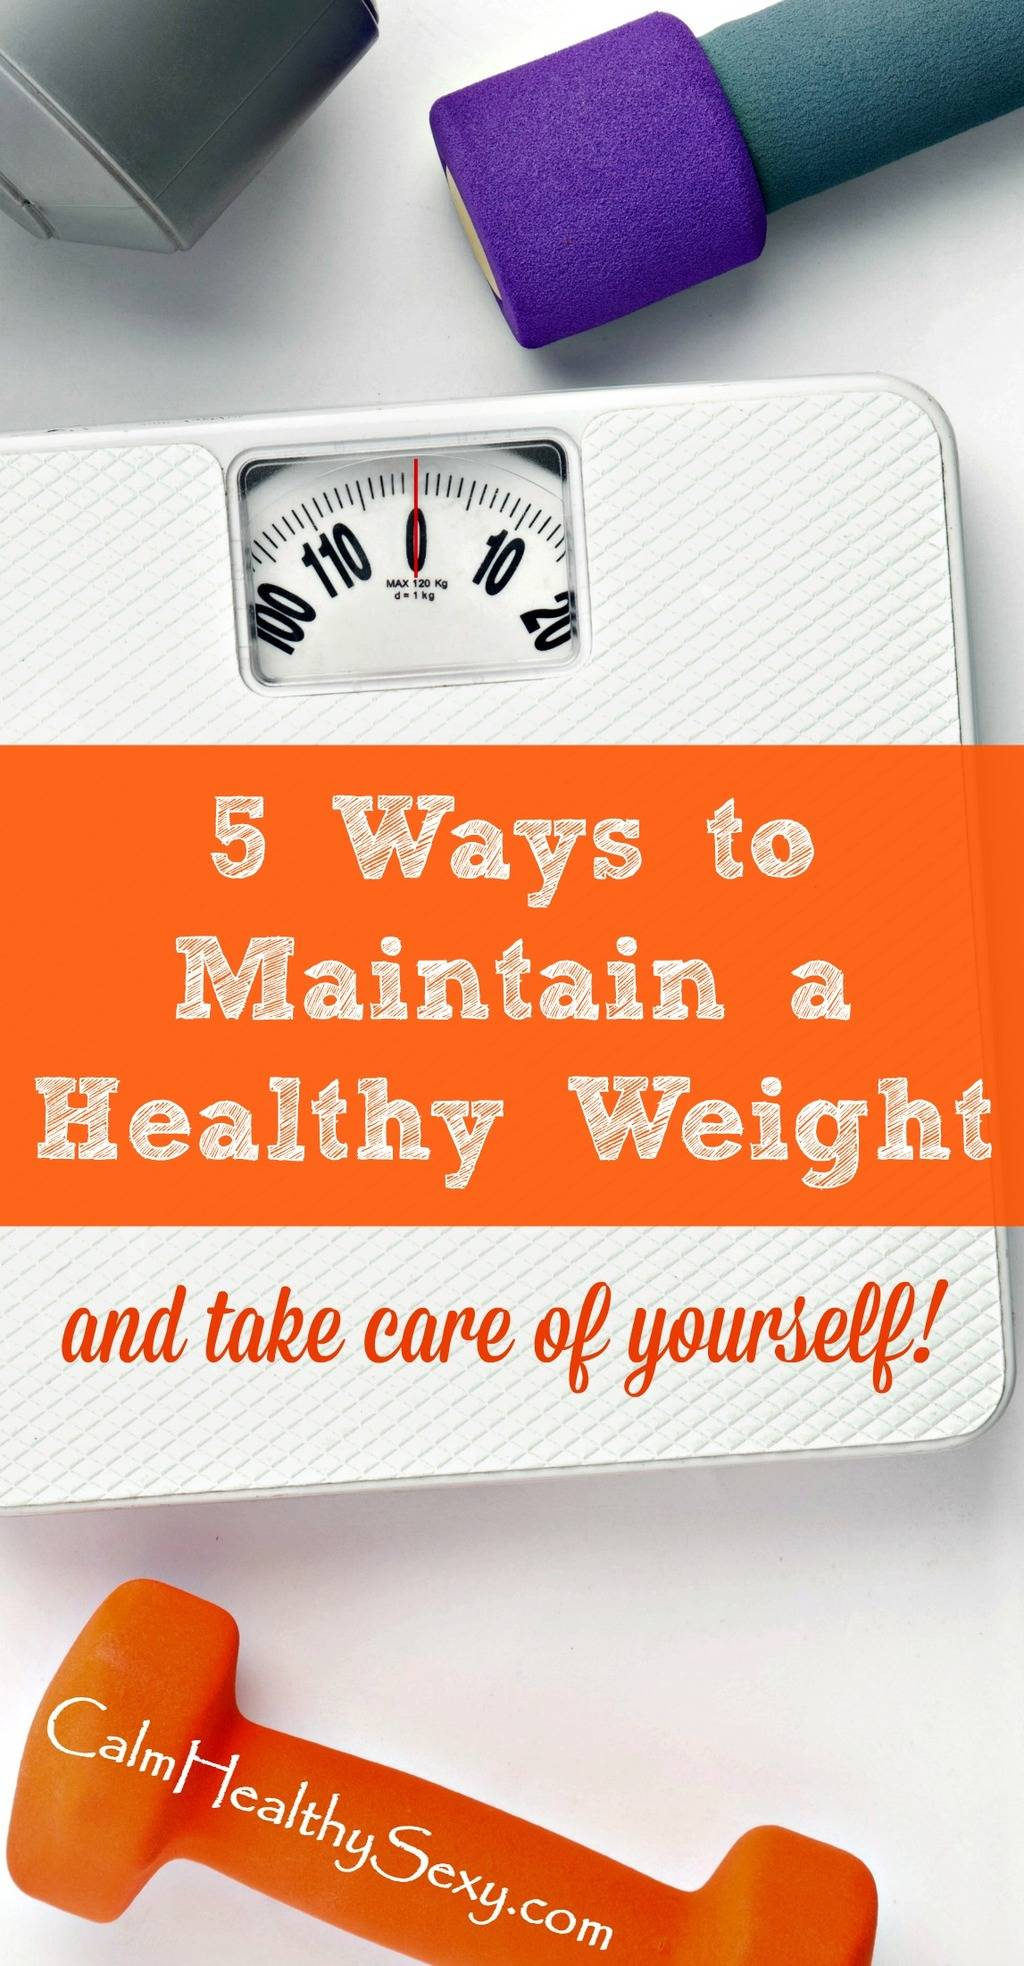 5 Ways to Maintain a Healthy Weight - Simple things you can do, starting today, to lose weight and feel great. Weight loss | Healthy eating and diet | Exercise | Self-care for women